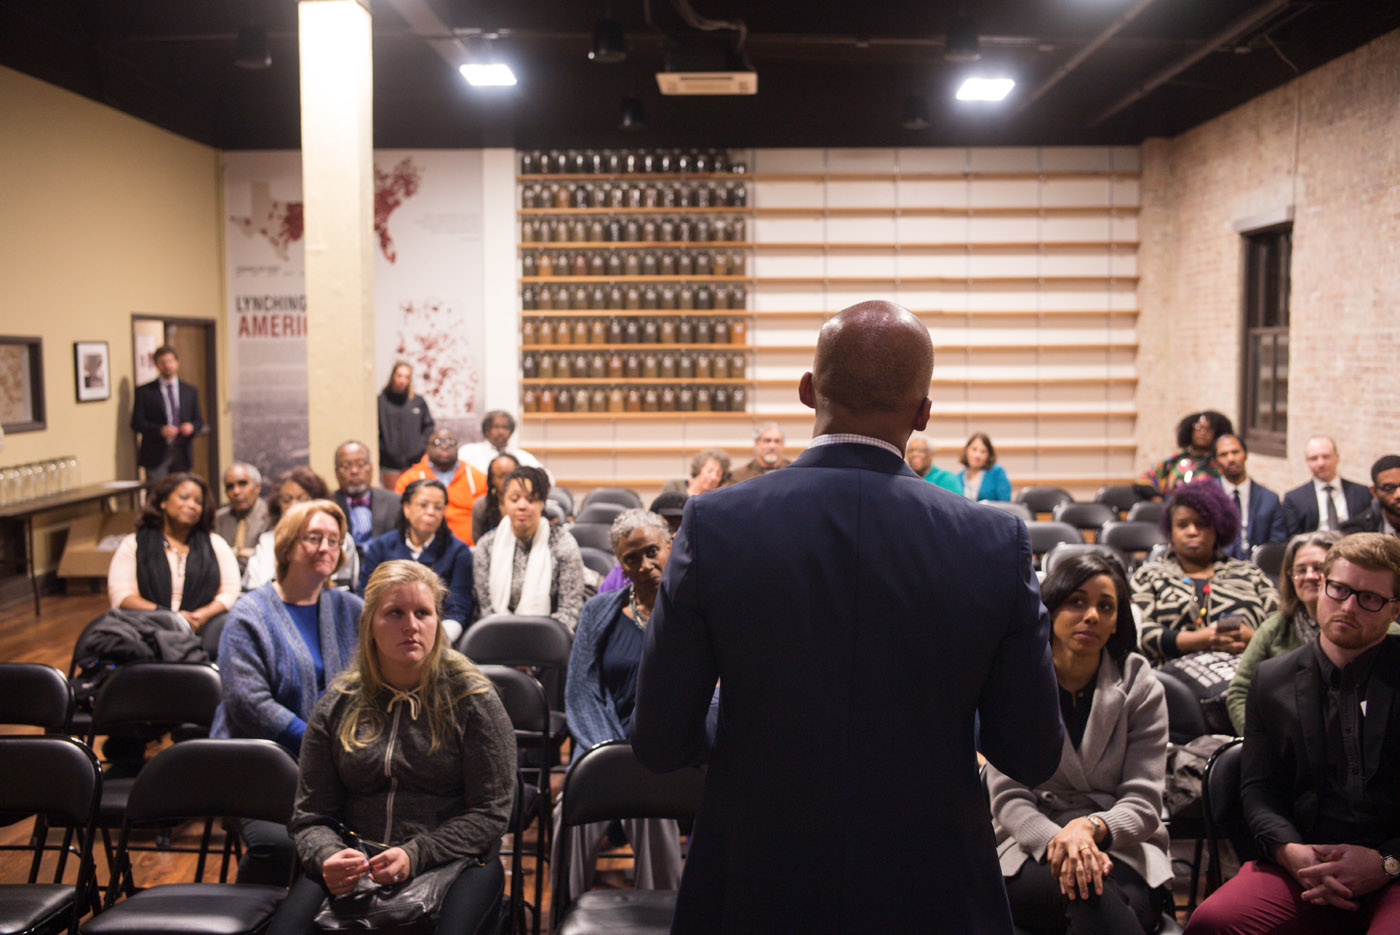 Montgomery, Ala - 02-12-16 -Mr. Stevenson talks to an audience of supports and volunteers. - Credit Photo by Ozier Muhammad